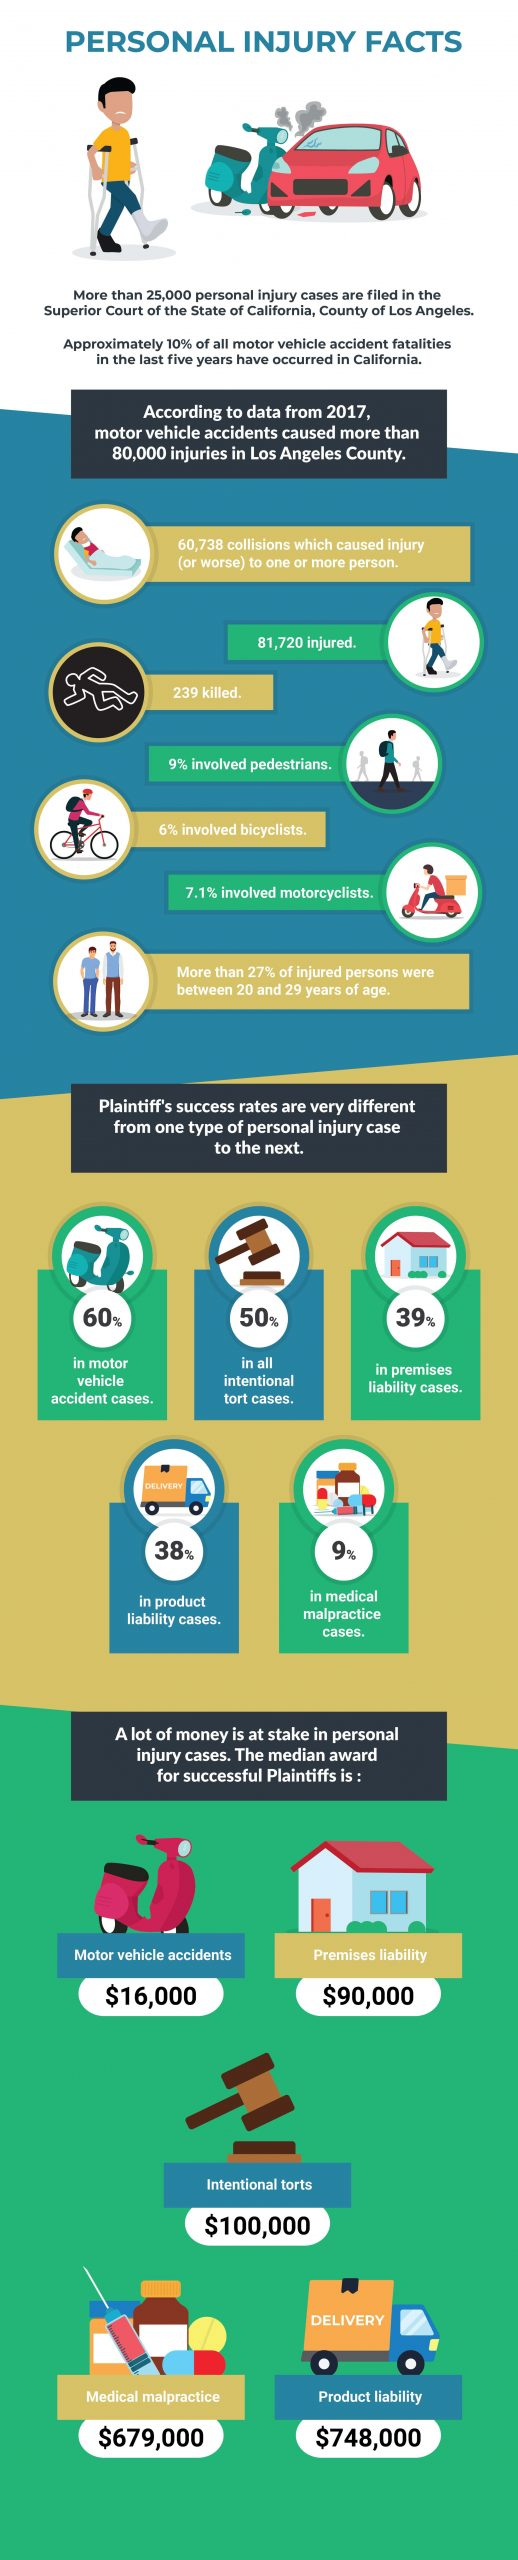 Los-Angeles-Personal-Injury-Facts-2020--scaled